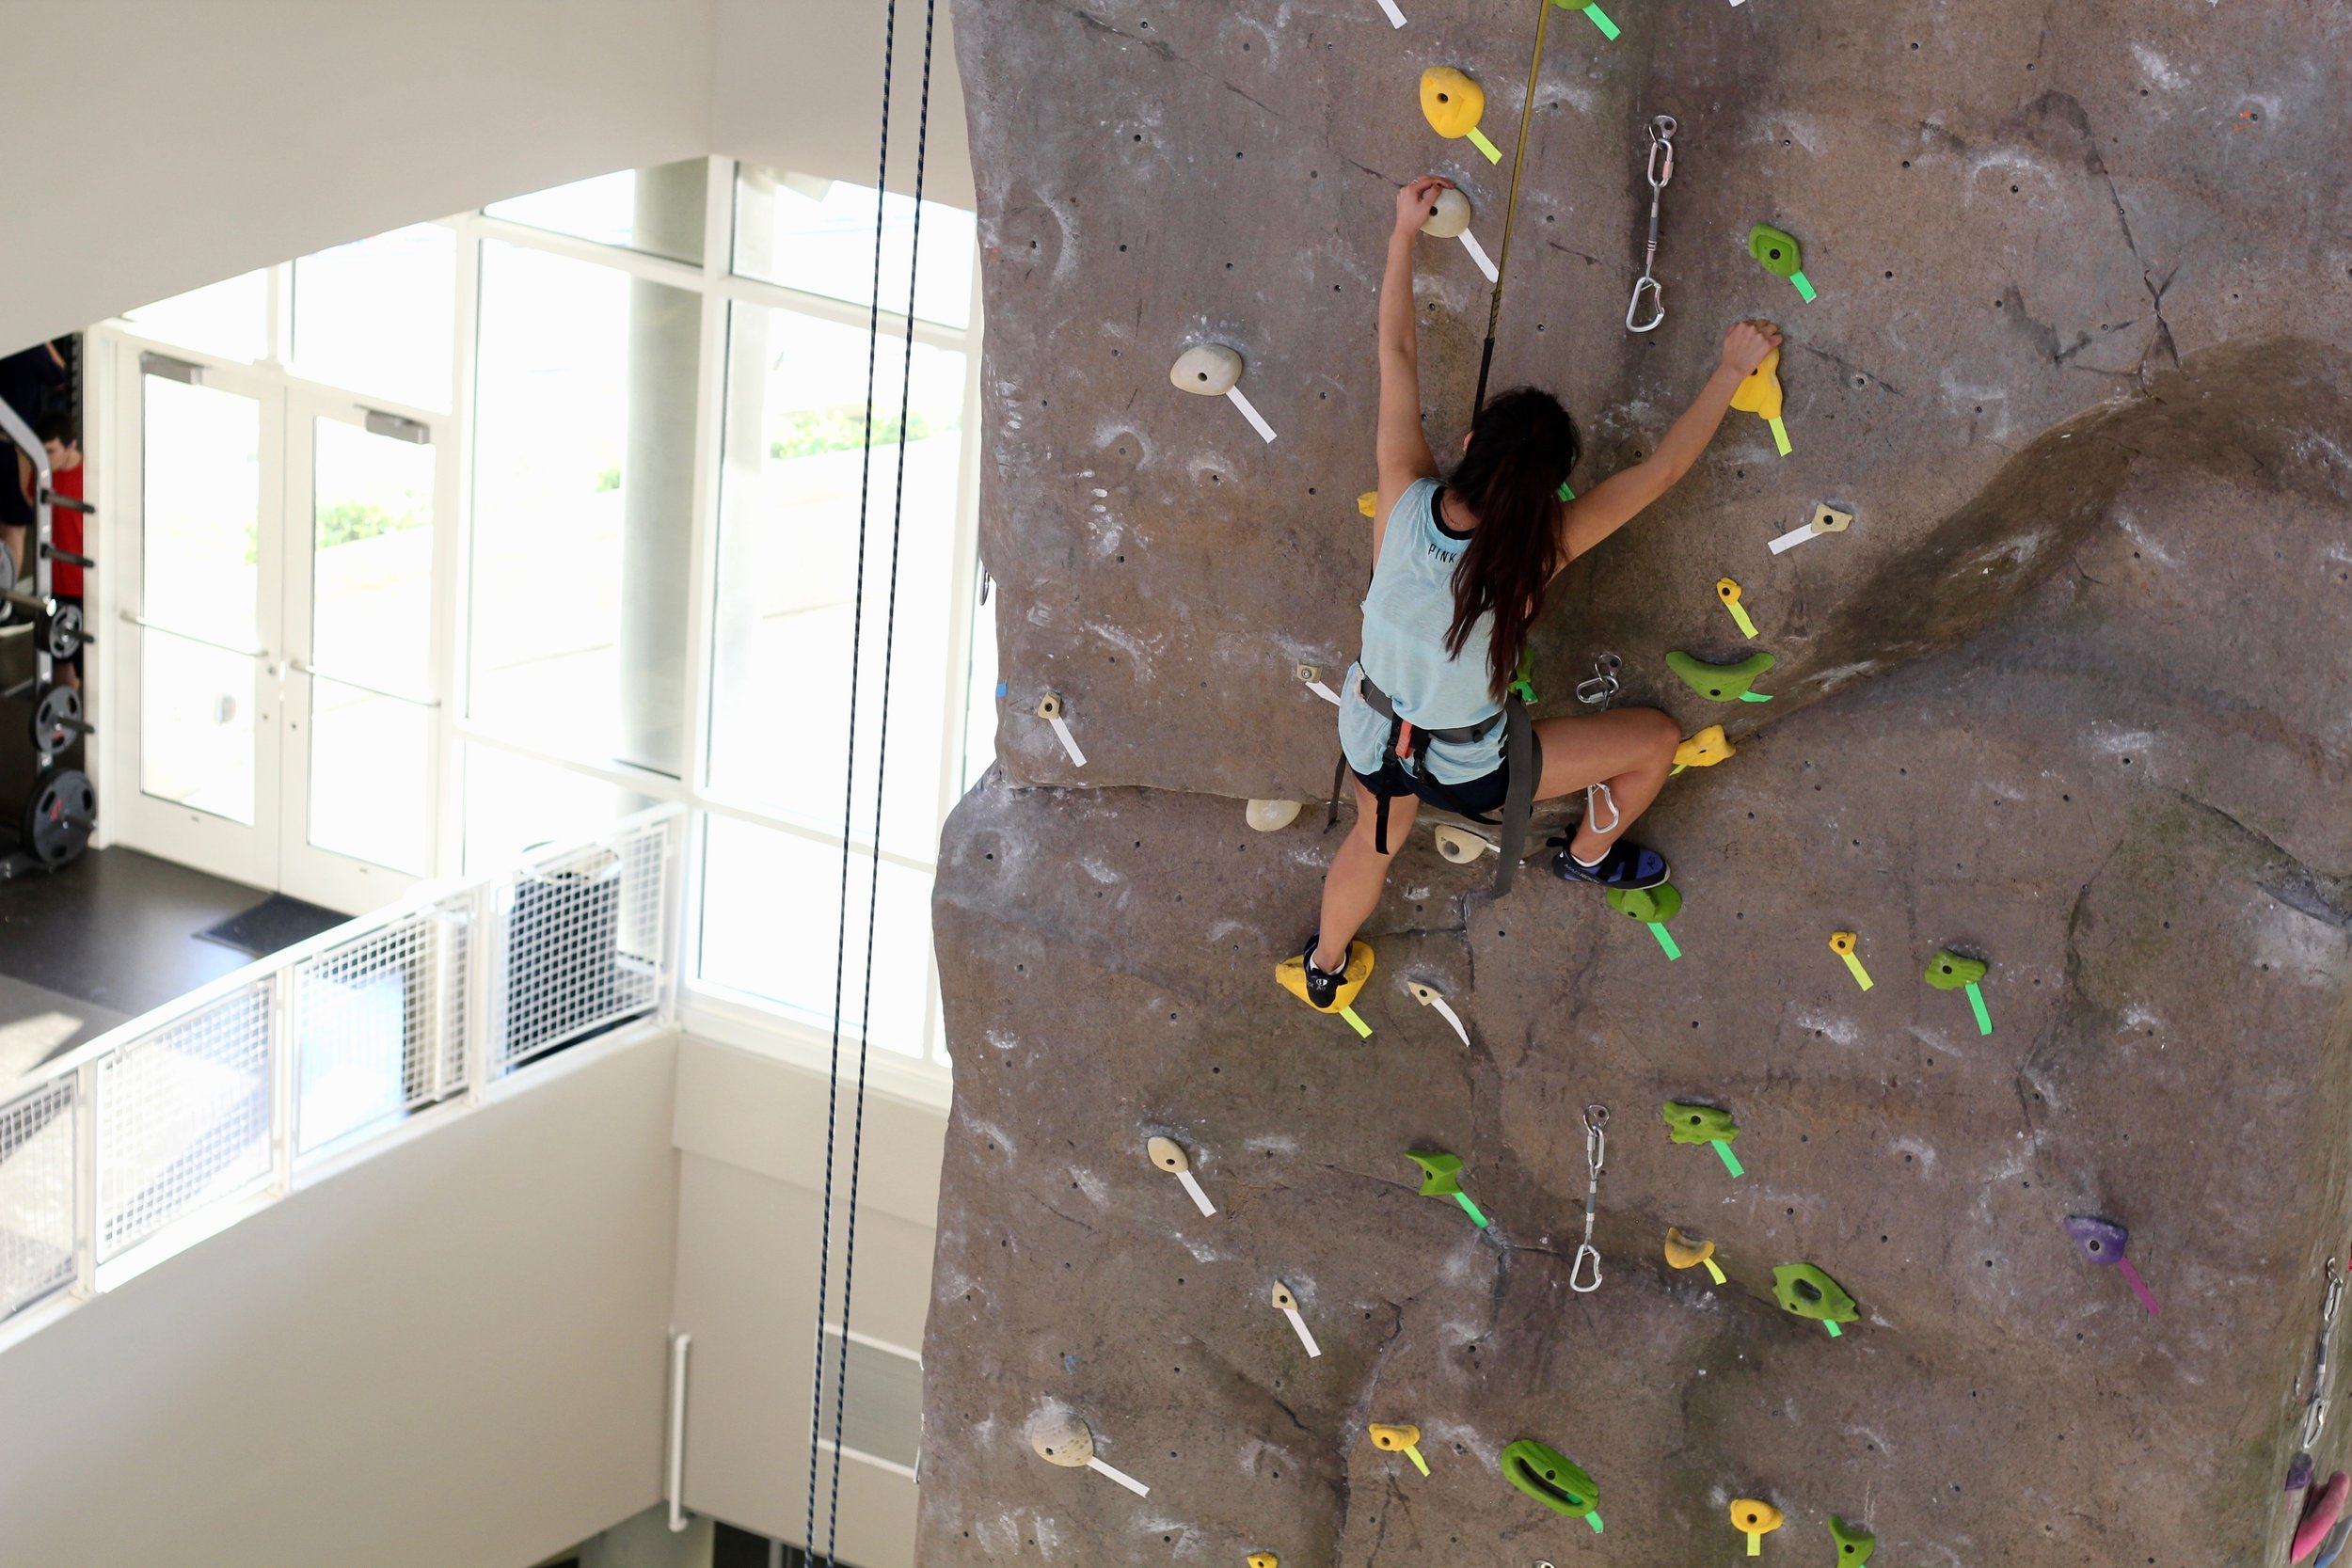 Recreation and Wellness Center Ranked Third Most Luxurious Rec Center in the Nation